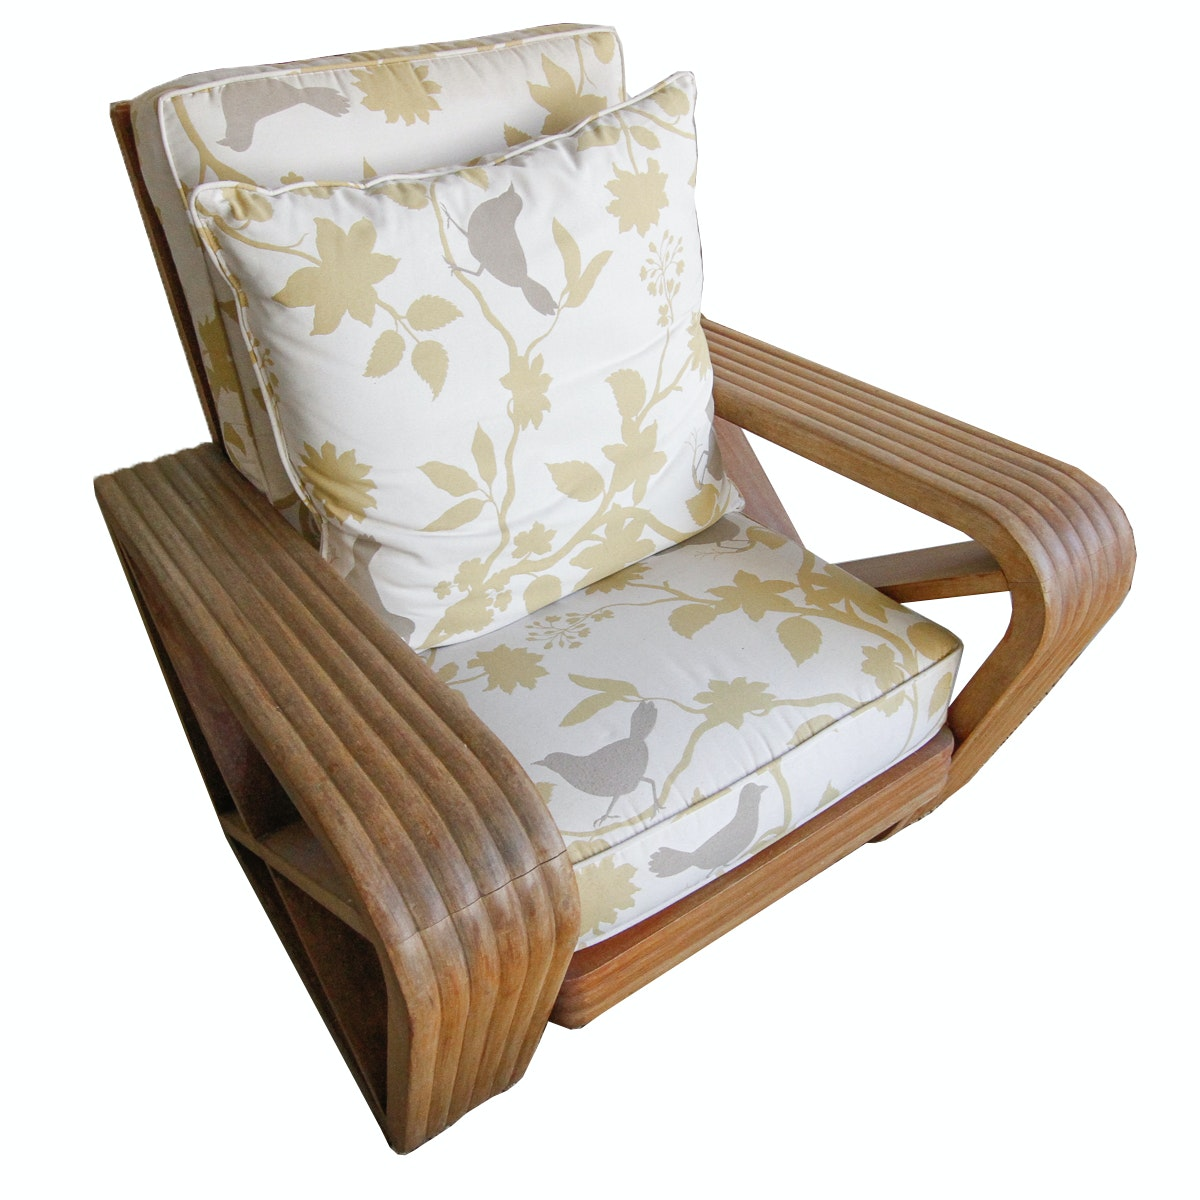 Wooden Outdoor Chair With Padded Seat And Pillows ...